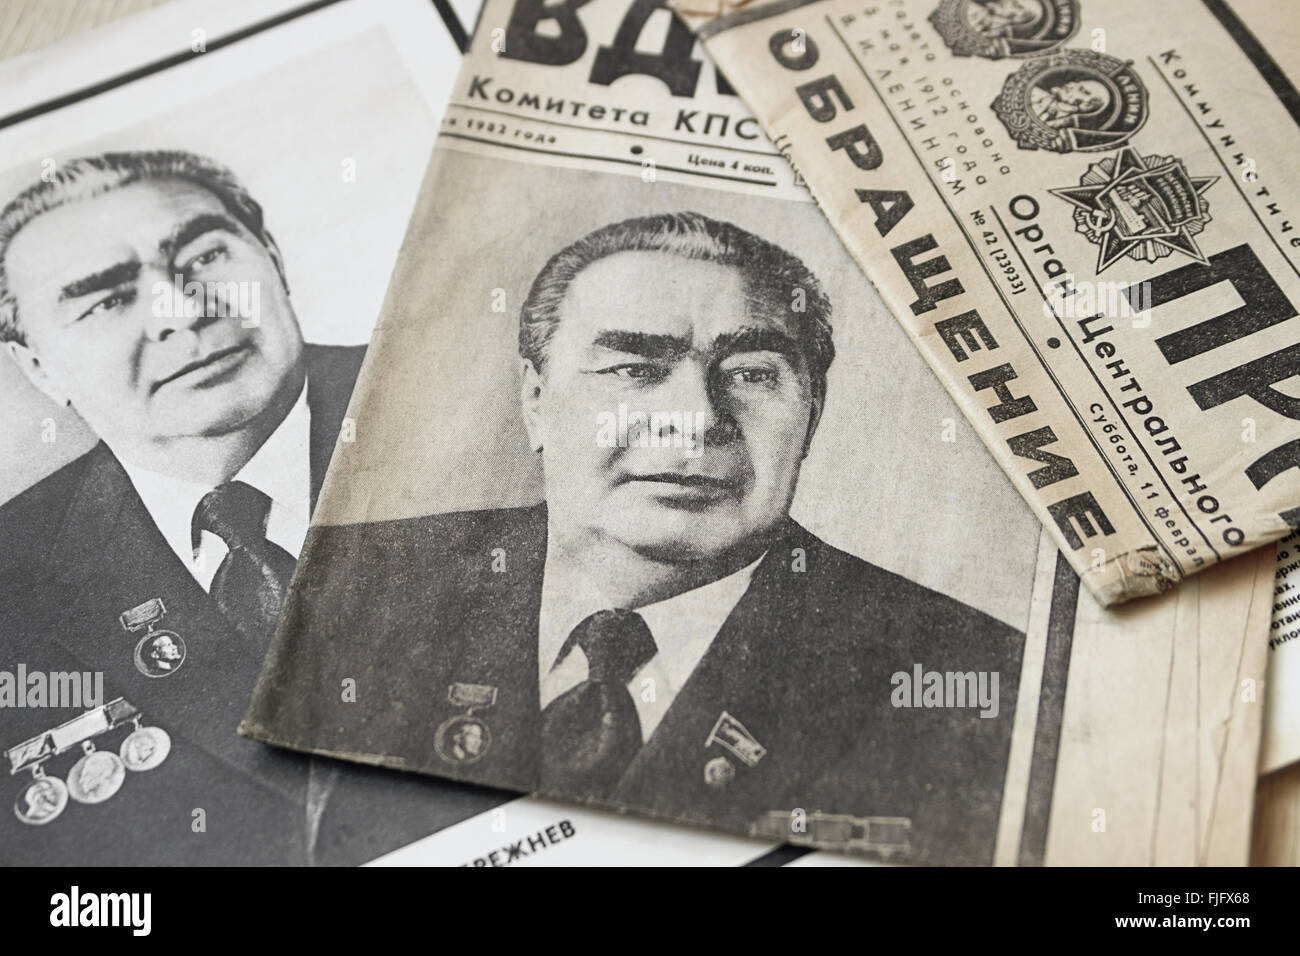 Appeal to the Soviet people in the newspapers about the death of Brezhnev, General Secretary of the CPSU - Stock Image